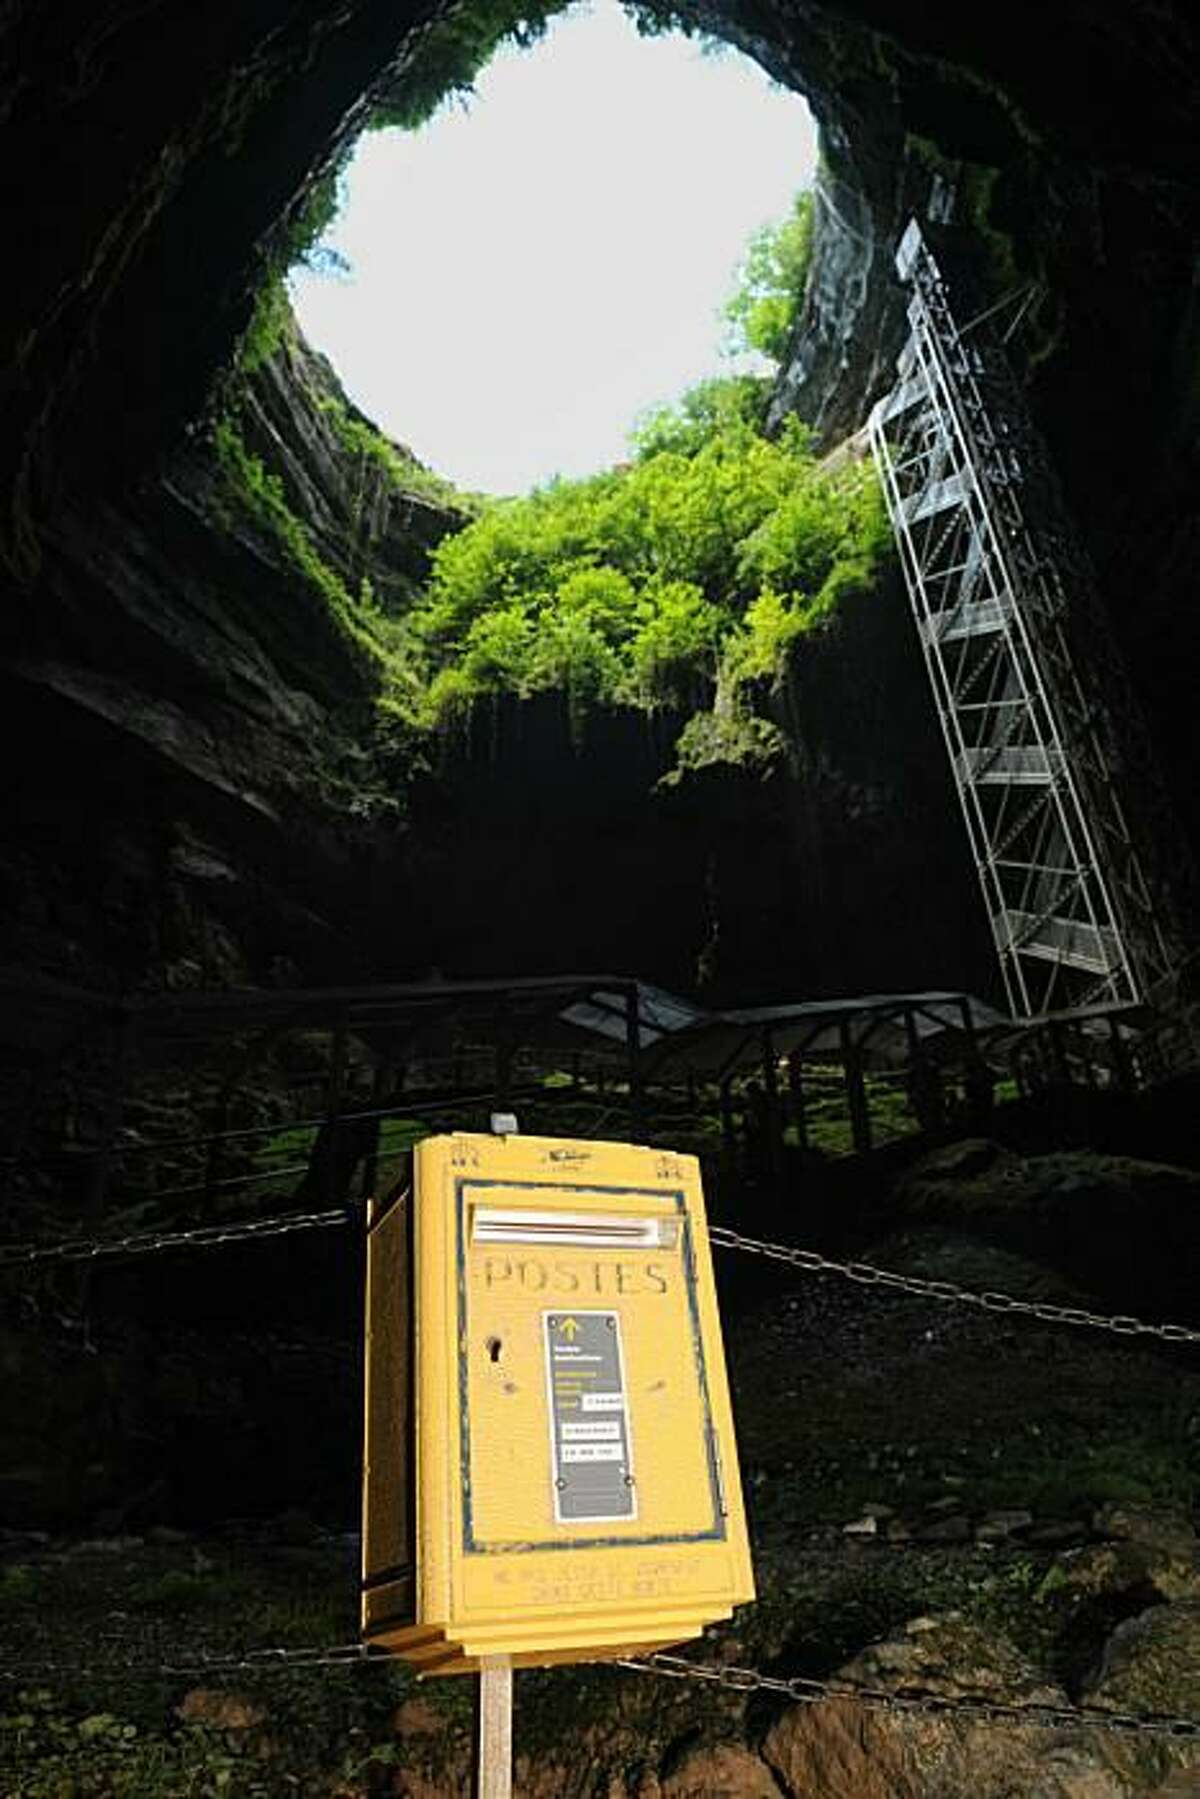 The French underground: To promote tourism in the Midi-Pyrenees region, the French installed a letter box at the bottom of the 250-foot-deep Padirac Chasm, an enormous hole in the ground that leads to an extensive cave system. The idea was to attract philatelists with special-edition postage stamps representing 10 sites of the region.